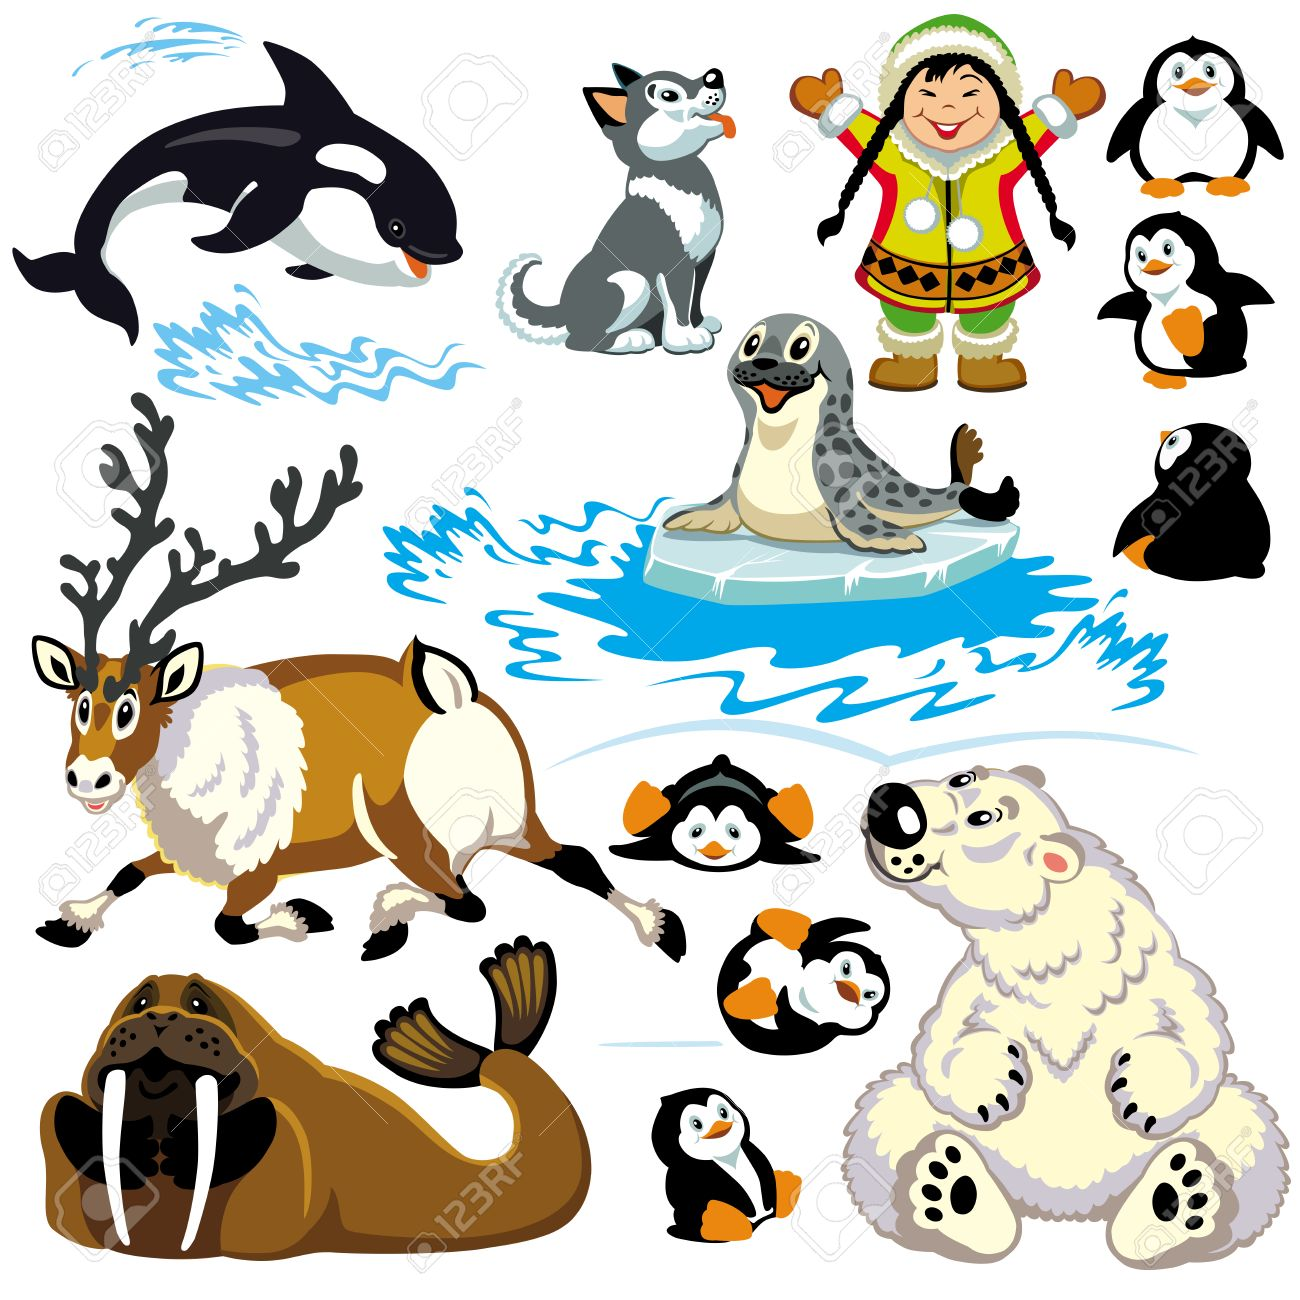 set with cartoon animals of arctic isolated pictures for little kids stock vector 24027404 - Kids Cartoon Animals